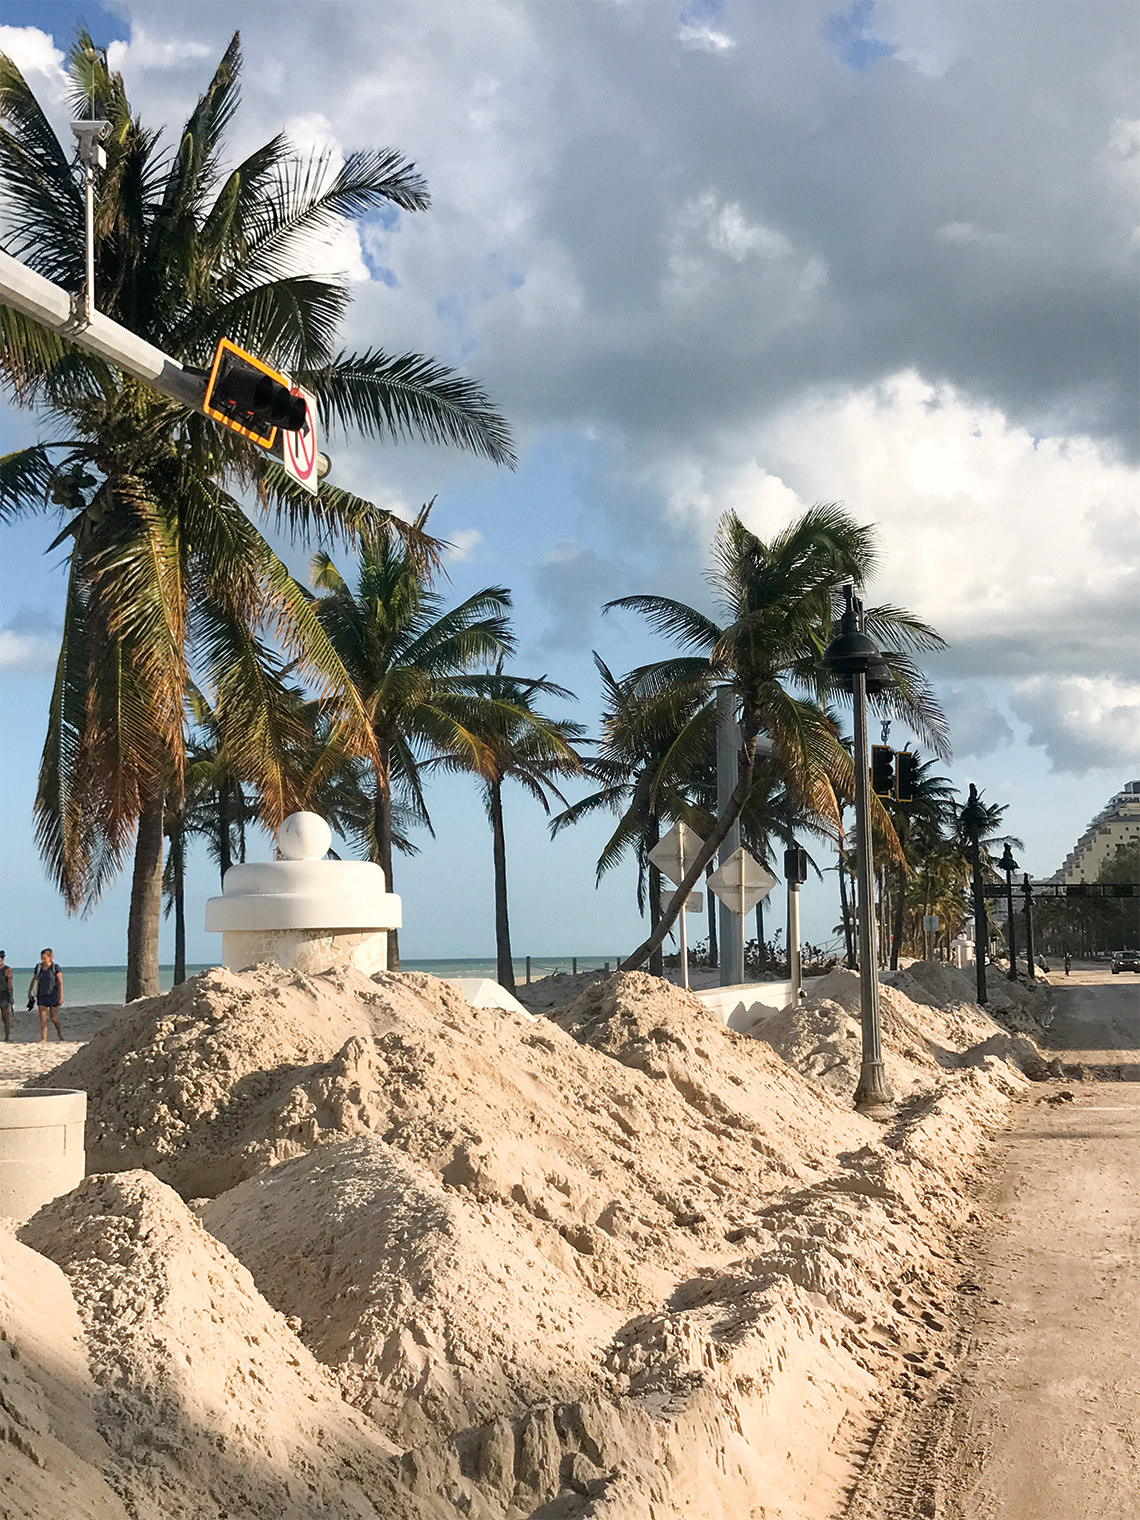 Instagram: @kenshatton